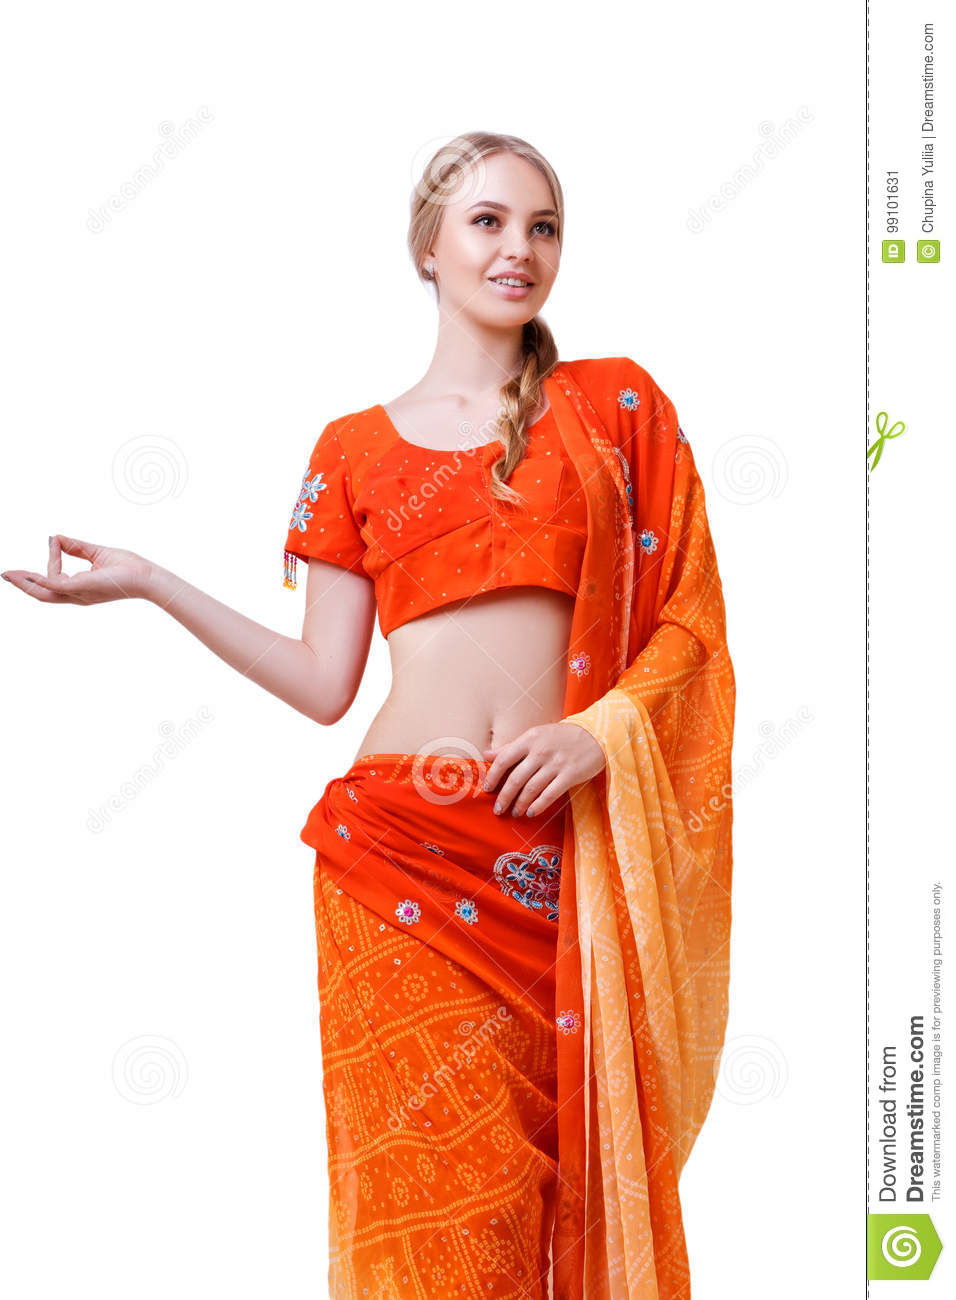 06f20958ba Caucasian blonde smiling girl in red indian national dress sari in studio  on white background isolated